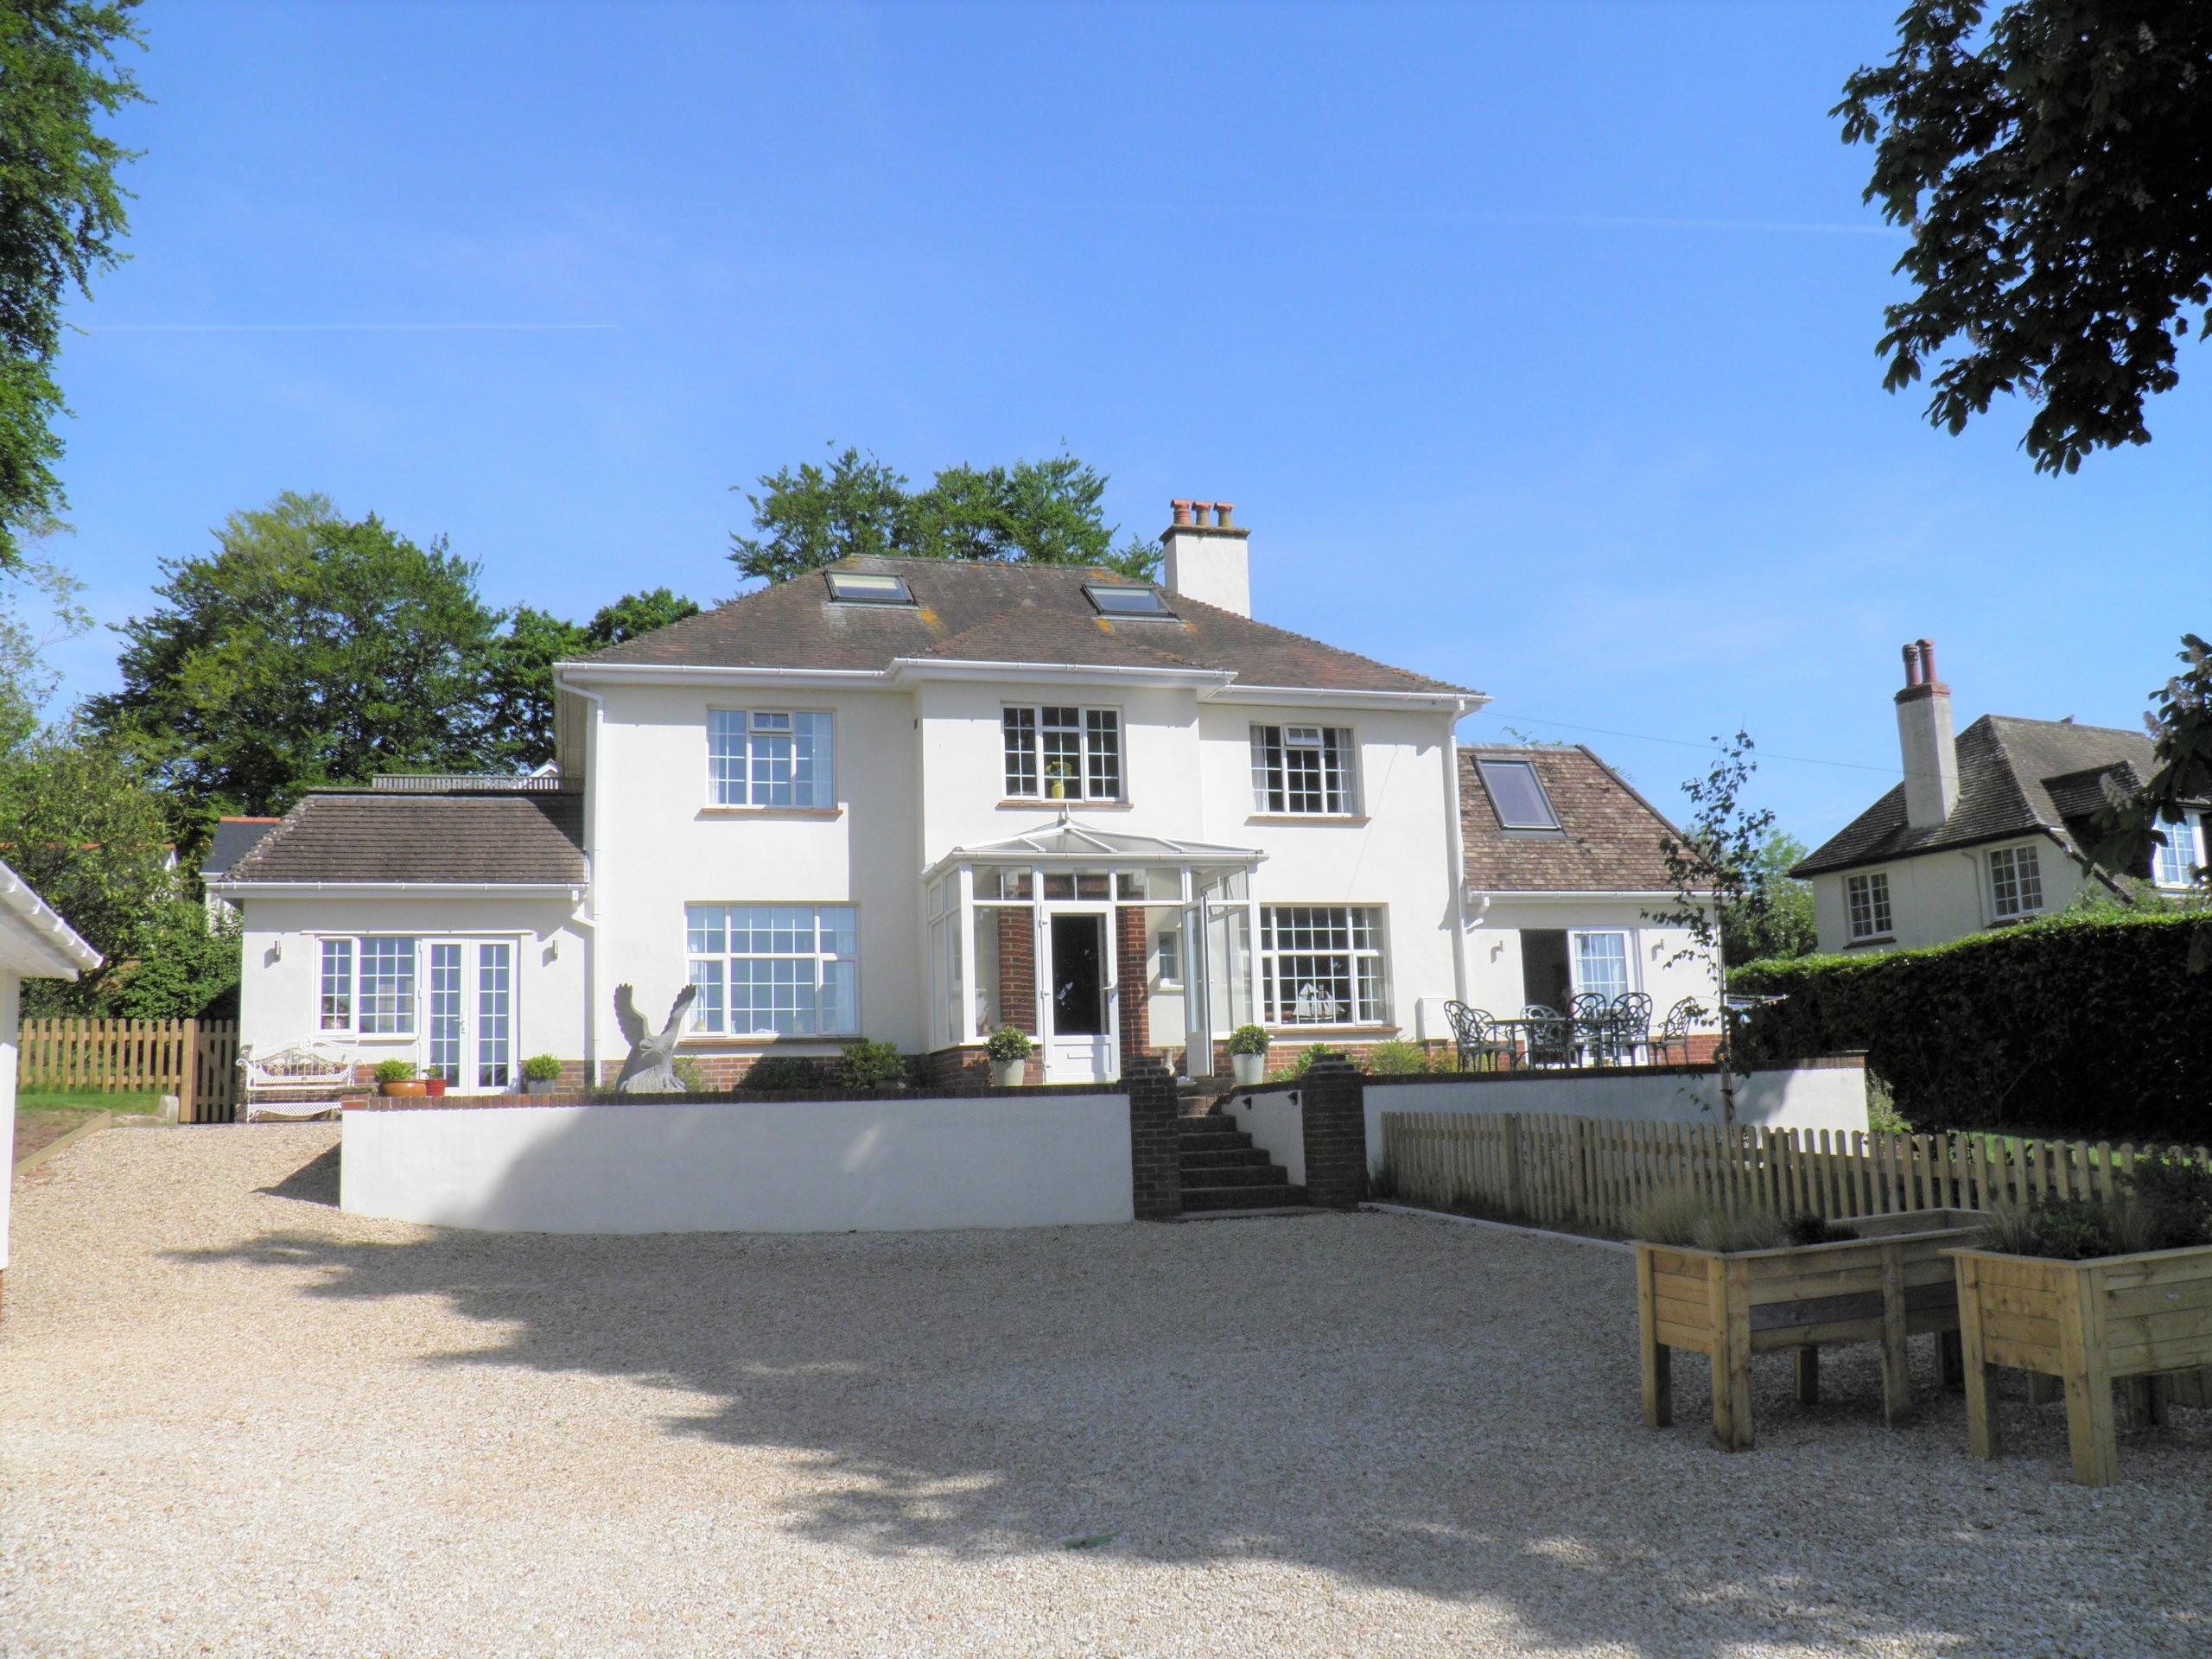 Bed And Breakfast Budleigh Salterton Sidmouth Bed And Breakfast Heights House Burscombe Lane